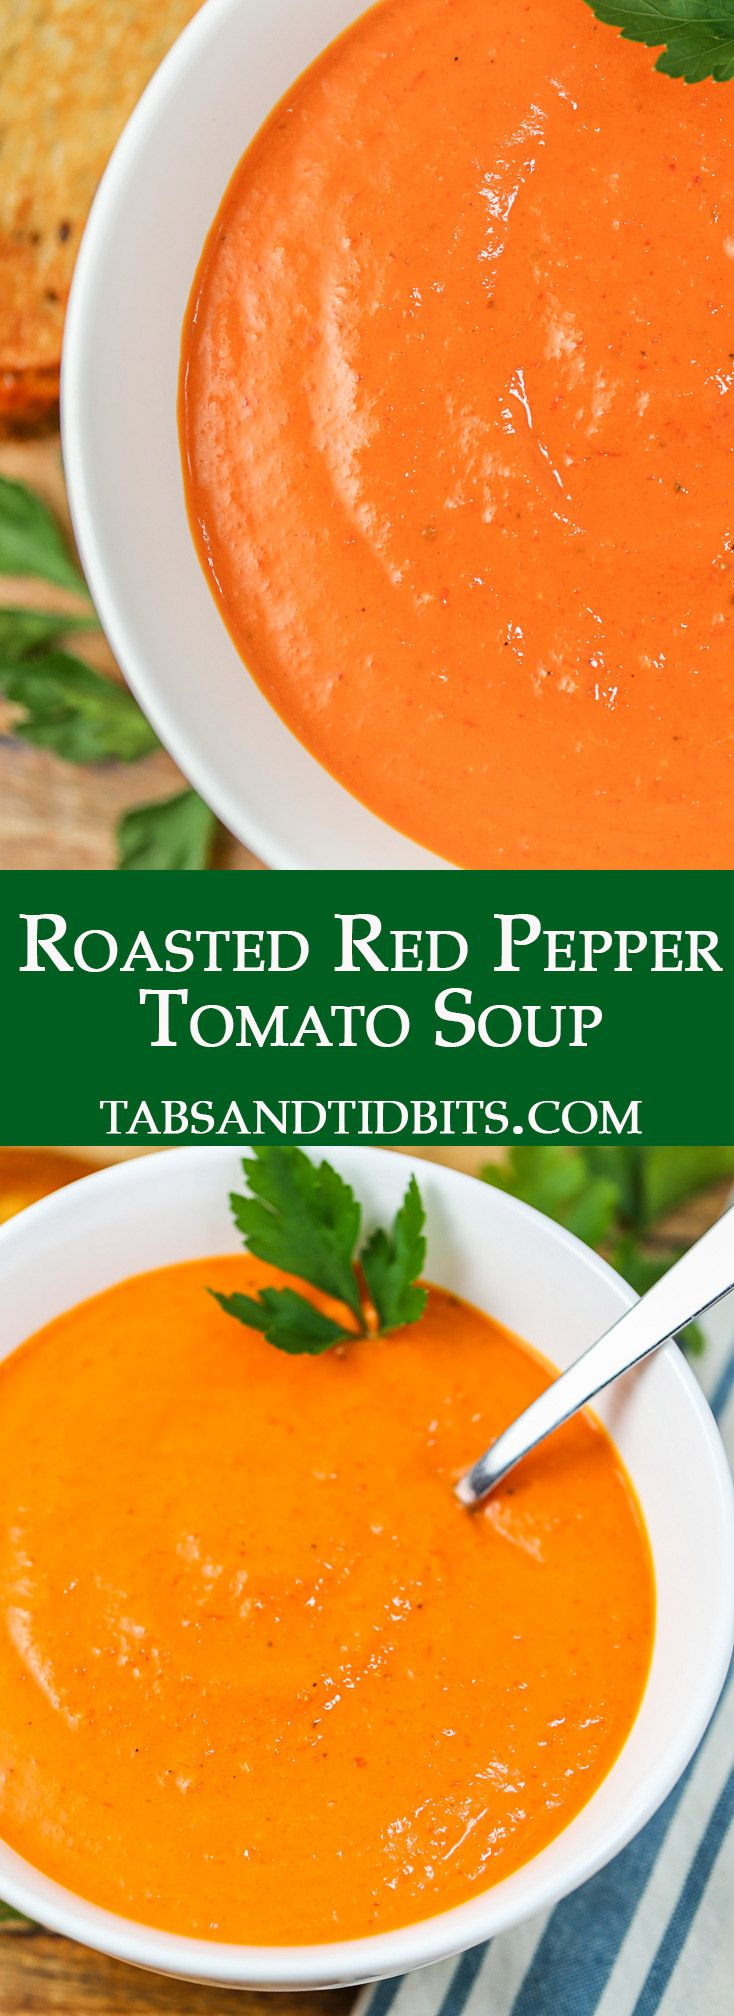 Roasted Red Pepper Tomato Soup Tabs Tidbits Recipe In 2020 Roasted Red Pepper Soup Homemade Soup Recipe Stuffed Peppers